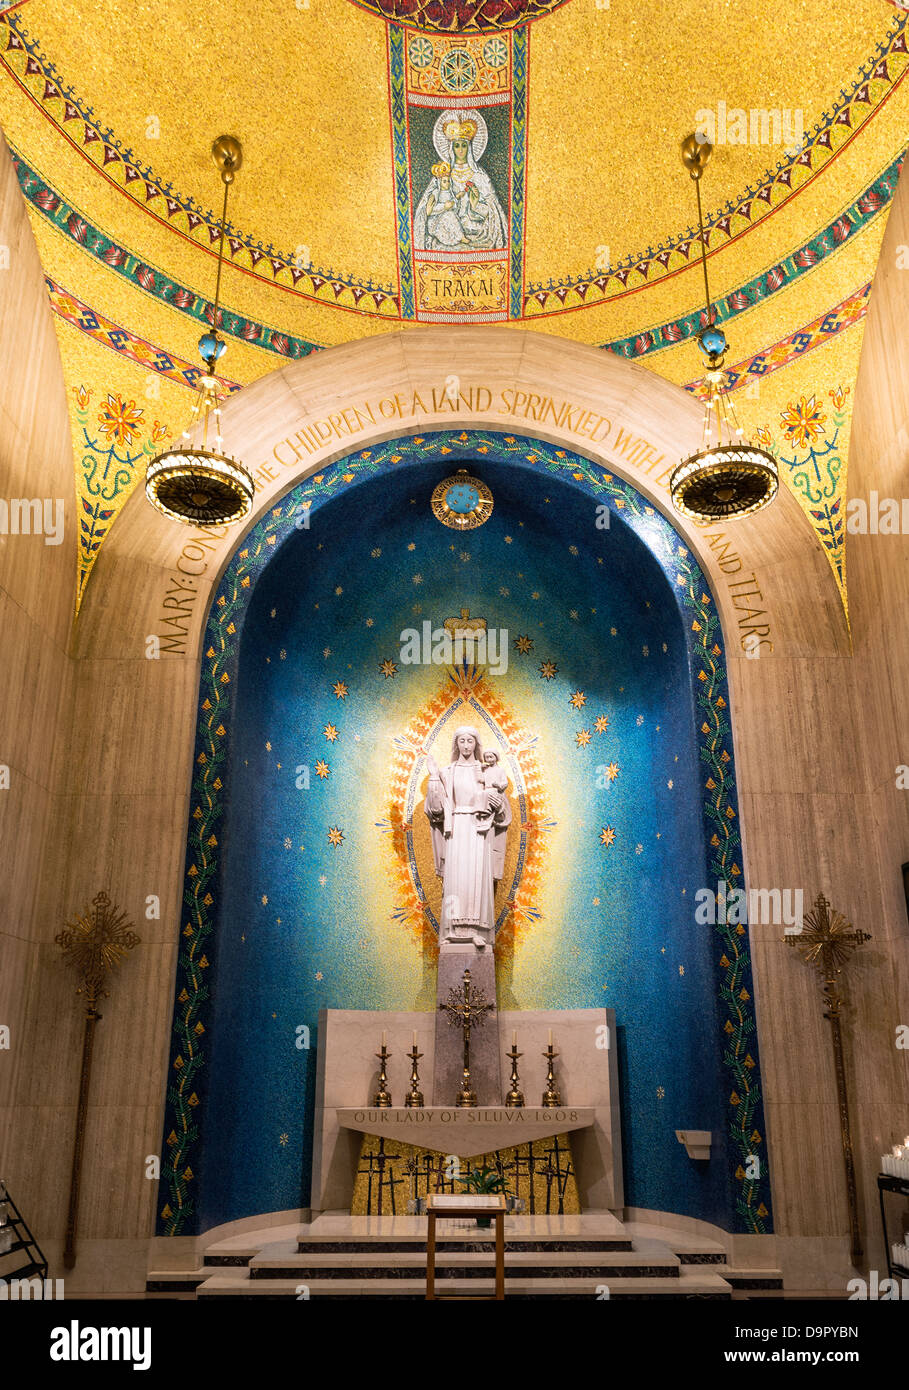 Our Lady of Siluva chapel, Basilica of the National Shrine of the Immaculate Conception, Washington DC, USA Stock Photo